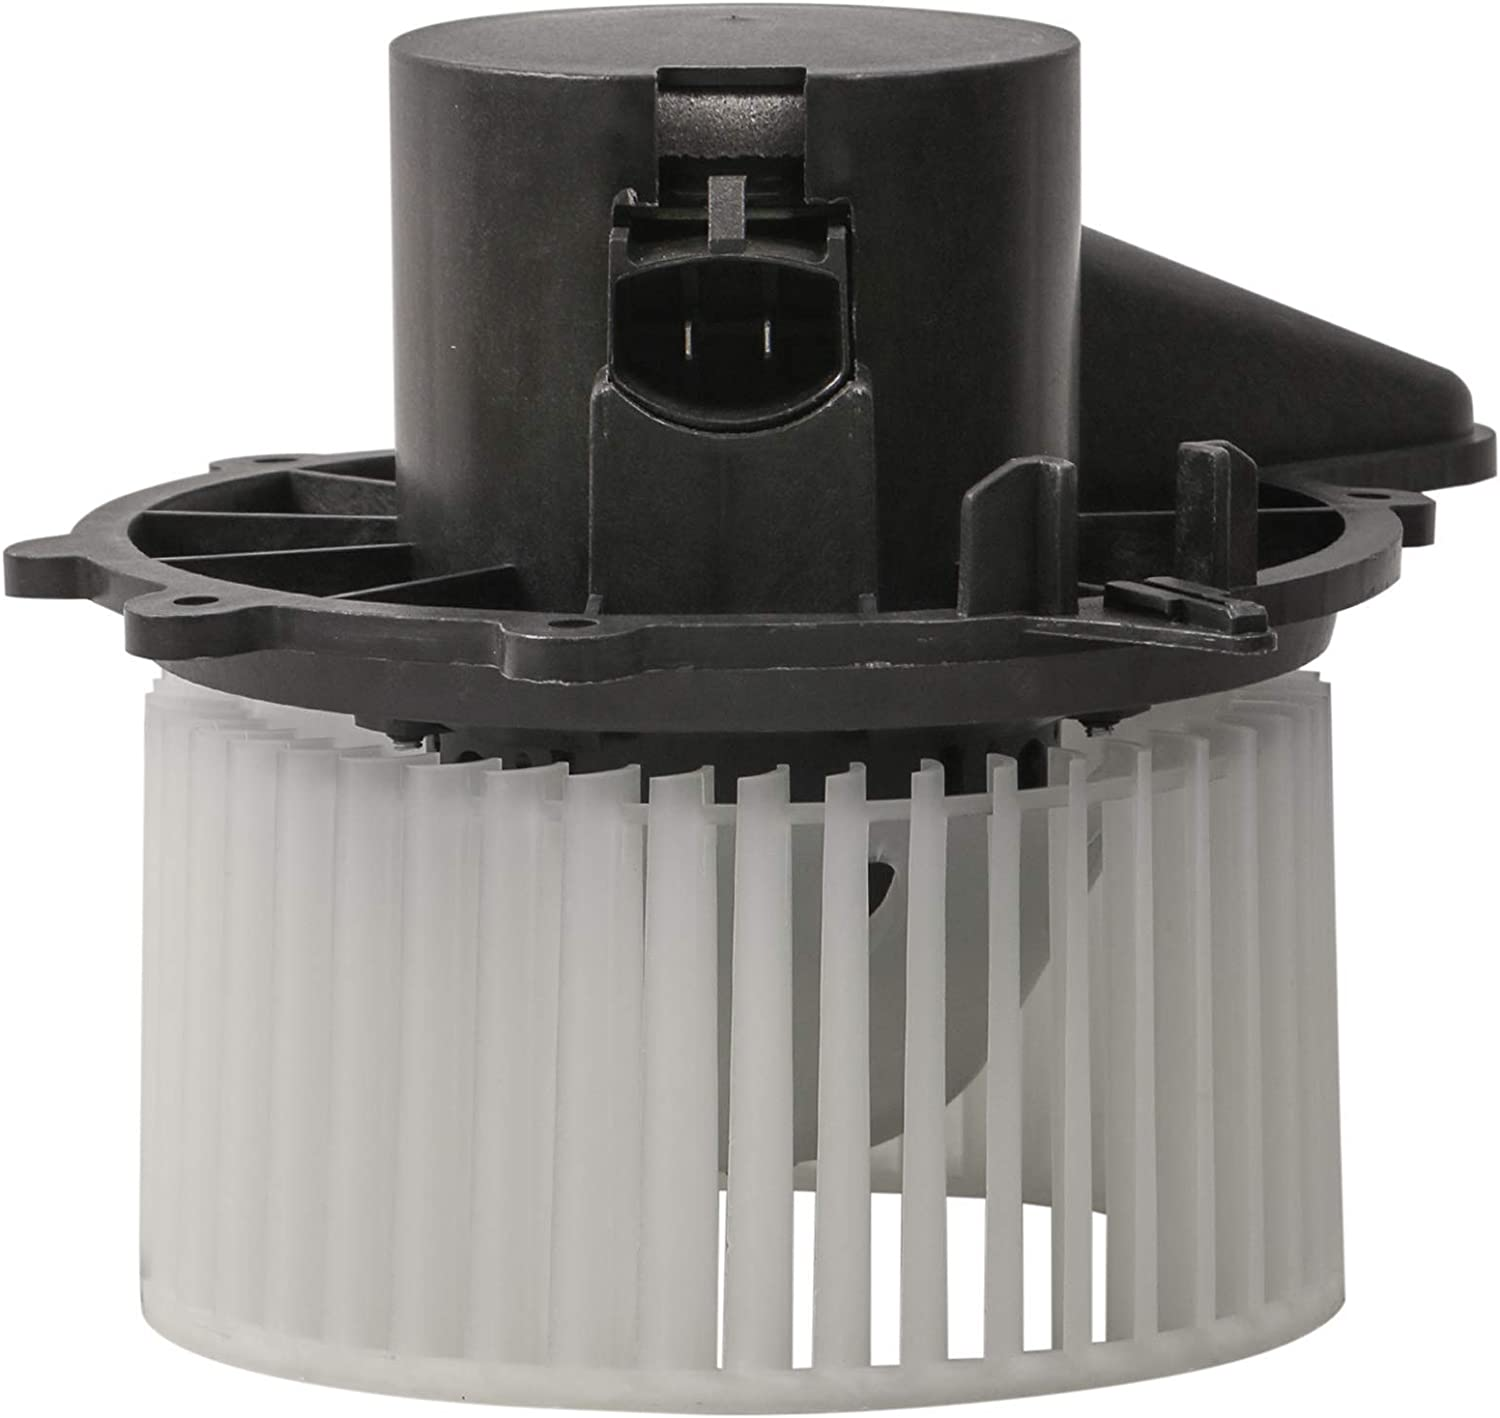 MOSTPLUS Front AC Heater Blower Motor Assembly Compatible with Ford F-150 F-250 1997-2003//Ford Expedition 1997-2002//2002 Lincoln Blackwood//1998-2002 Lincoln Navigator Replaces# 700027 YL7Z18504AA